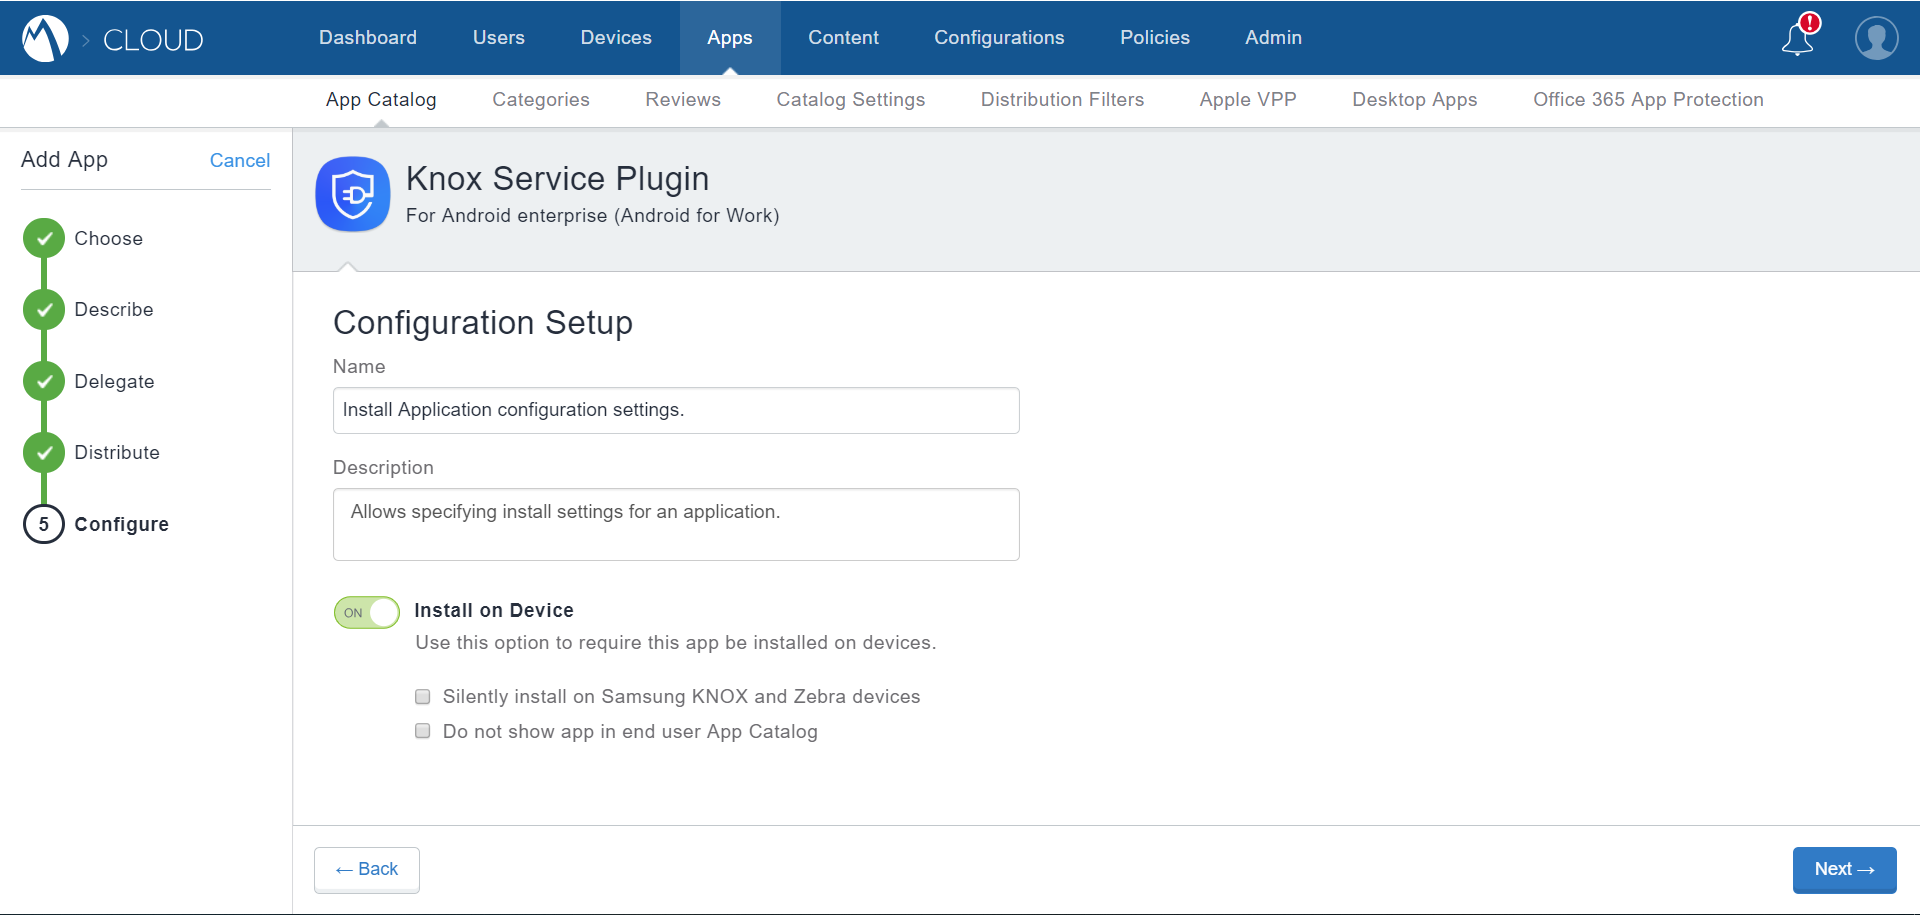 MobileIron Cloud App Catalog - Knox Service Plugin - Installation Configuration settings - mandatory installation options